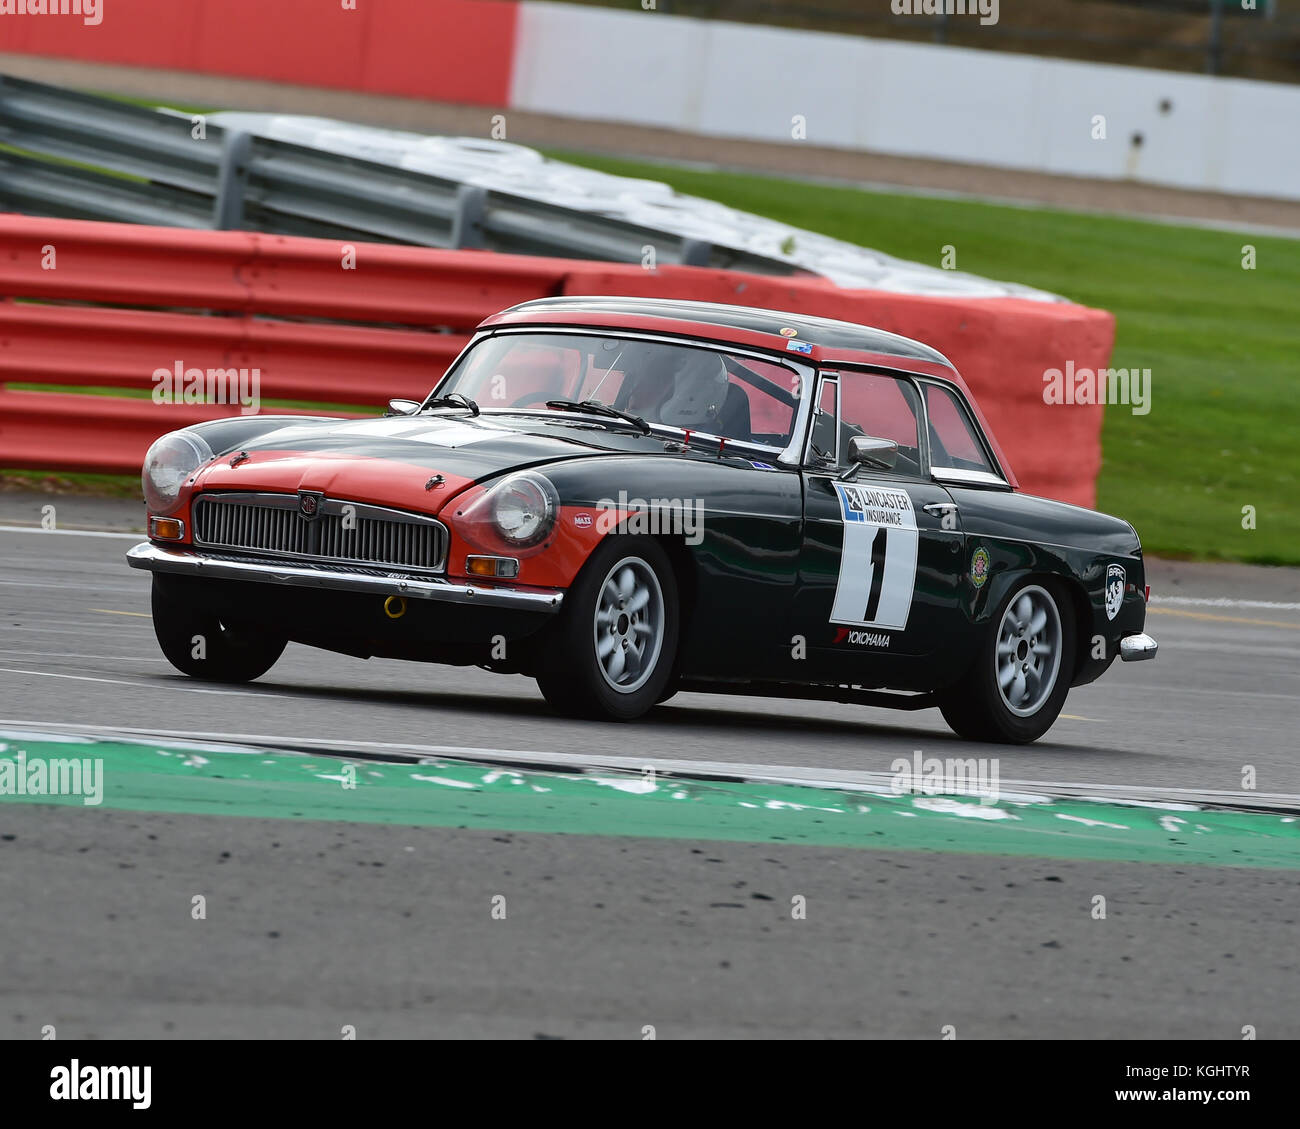 Mg motor cars owners club stock photos mg motor cars for National motor club compensation plan